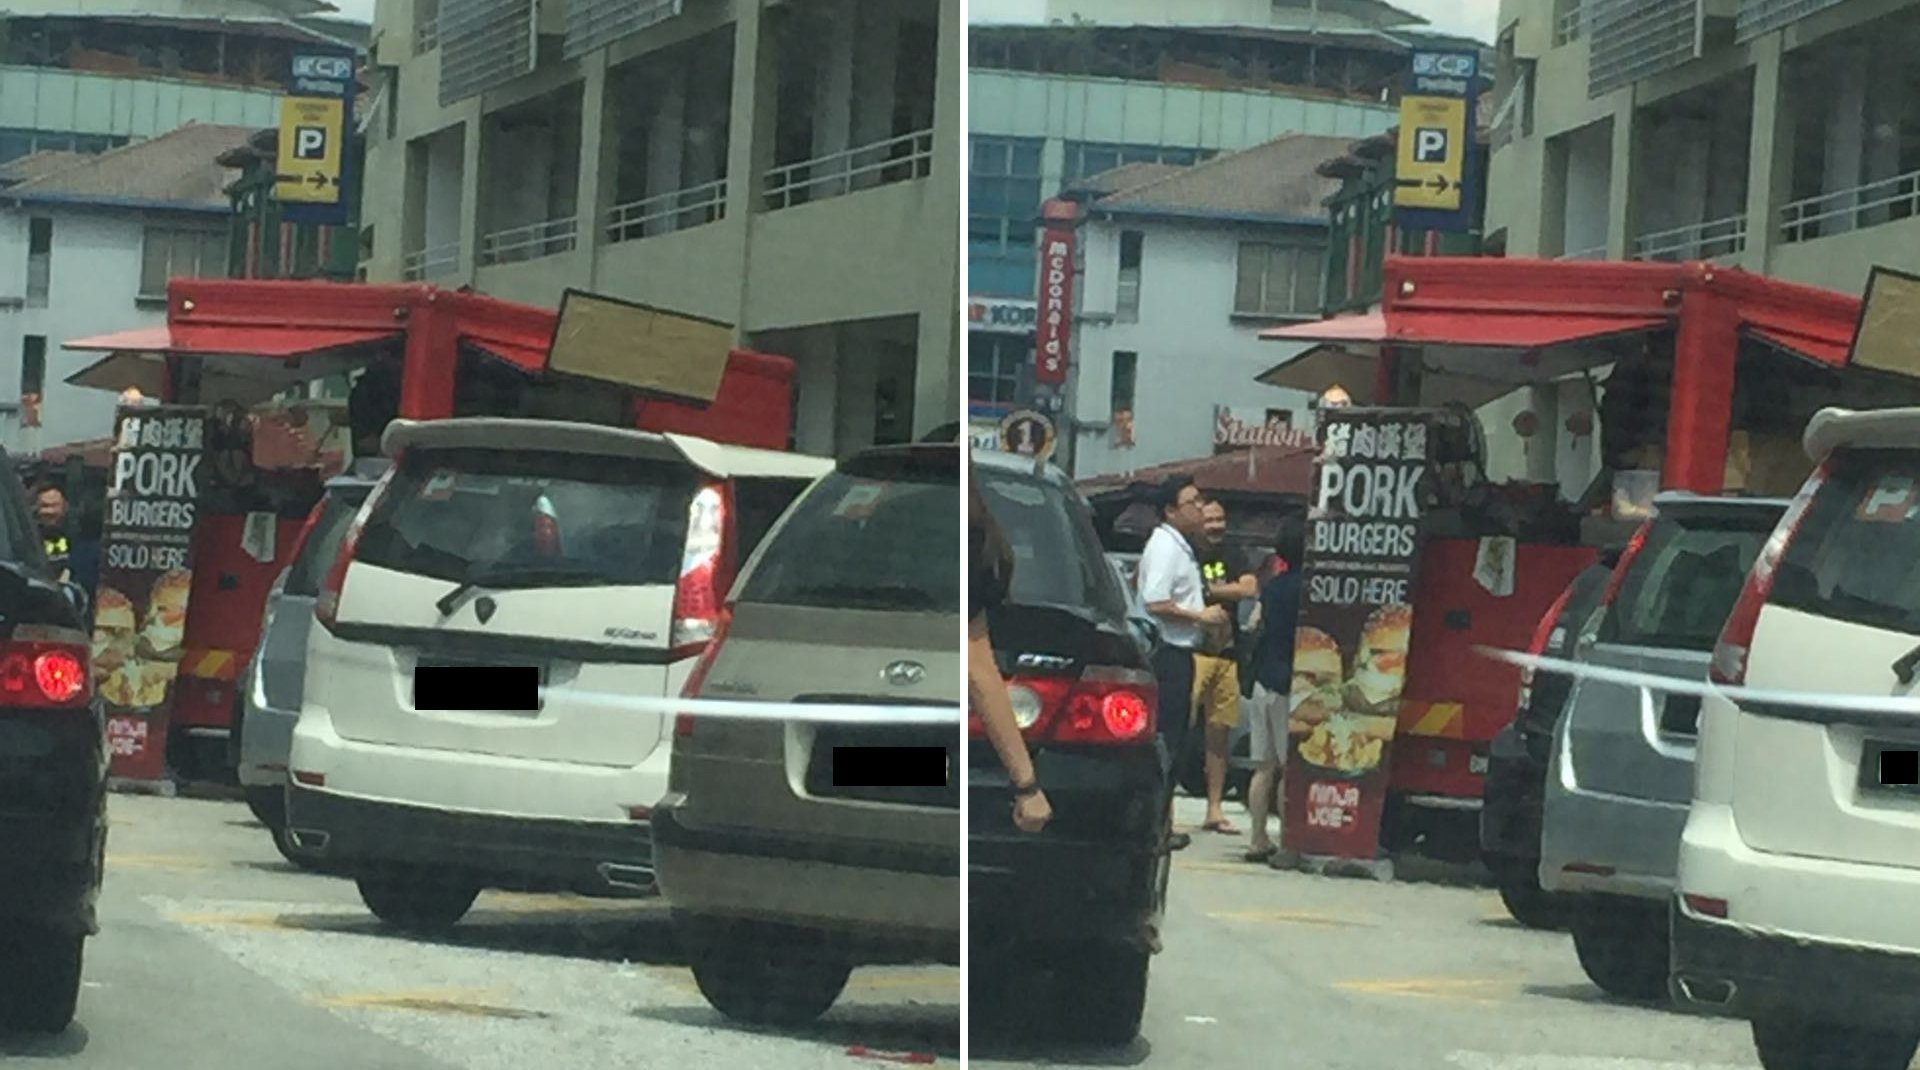 Some Malaysians are Outraged Over Foodtruck that Sells Pork Burger - World Of Buzz